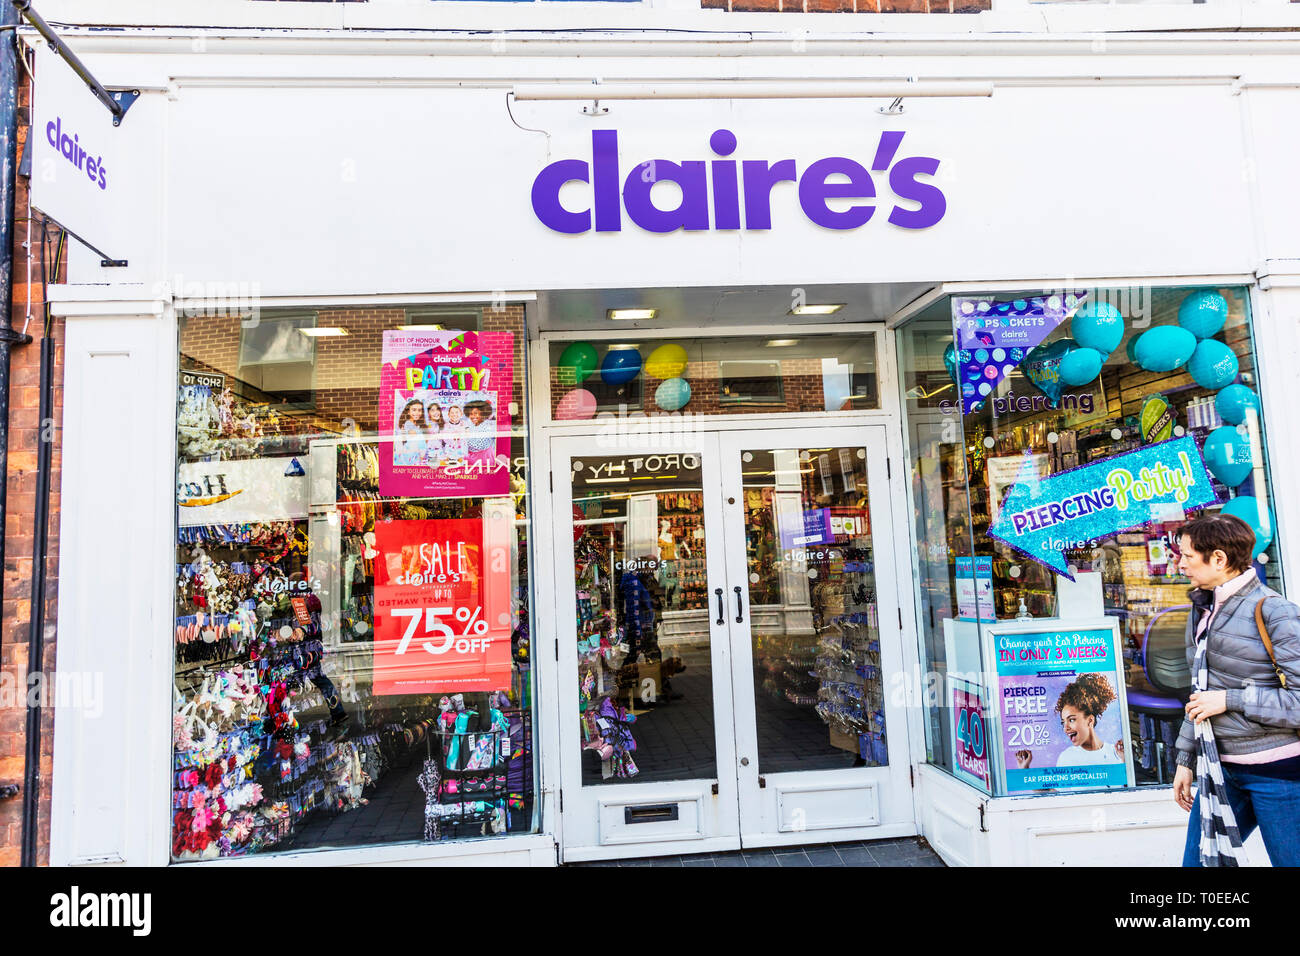 claire's accessories shop, claires accessories store, claire's, accessories, shop, store, sign, claire's high street store UK, claires shop, Claires - Stock Image